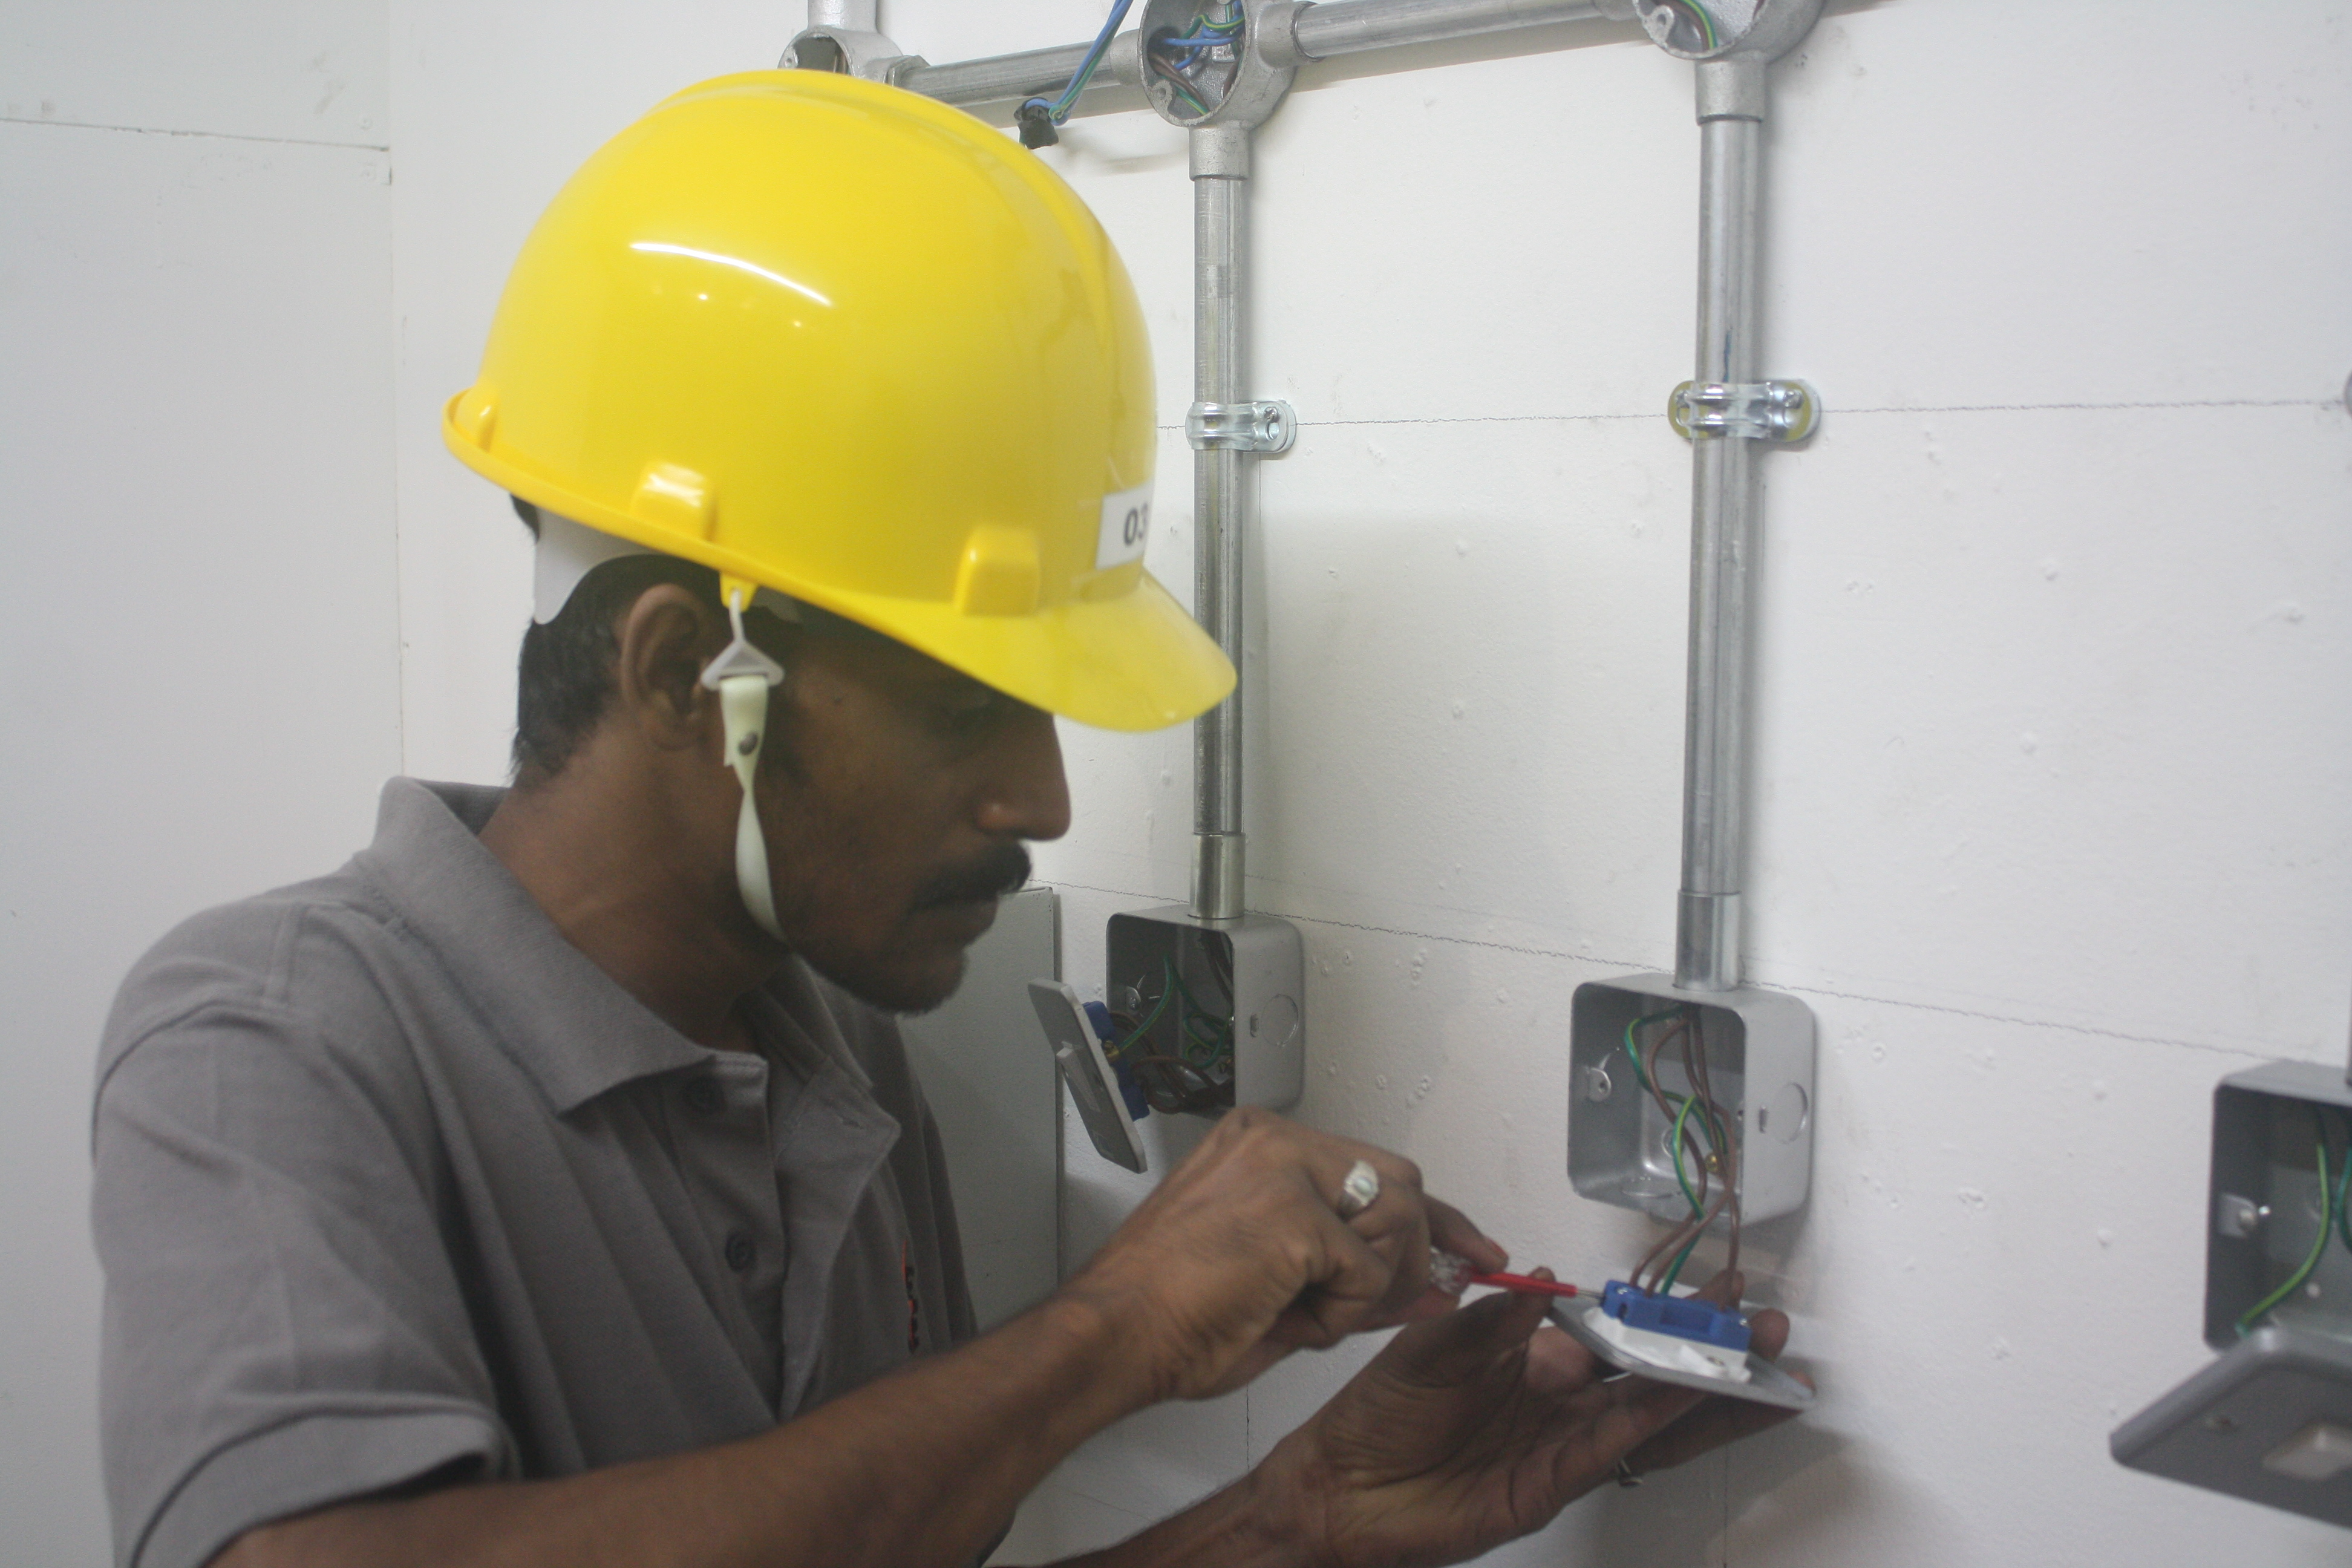 Electrical Wiring Installation - Grace Electrical Engineering on thermostat installation, java installation, transformer installation, hardware installation, flooring installation, telephone wire installation, solenoid installation, furniture installation, roof installation, equipment installation, foundation installation, antenna installation, wood installation, starter installation, cheap car alarm installation, fan installation, electrical installation, heating installation, windows installation, batteries installation,